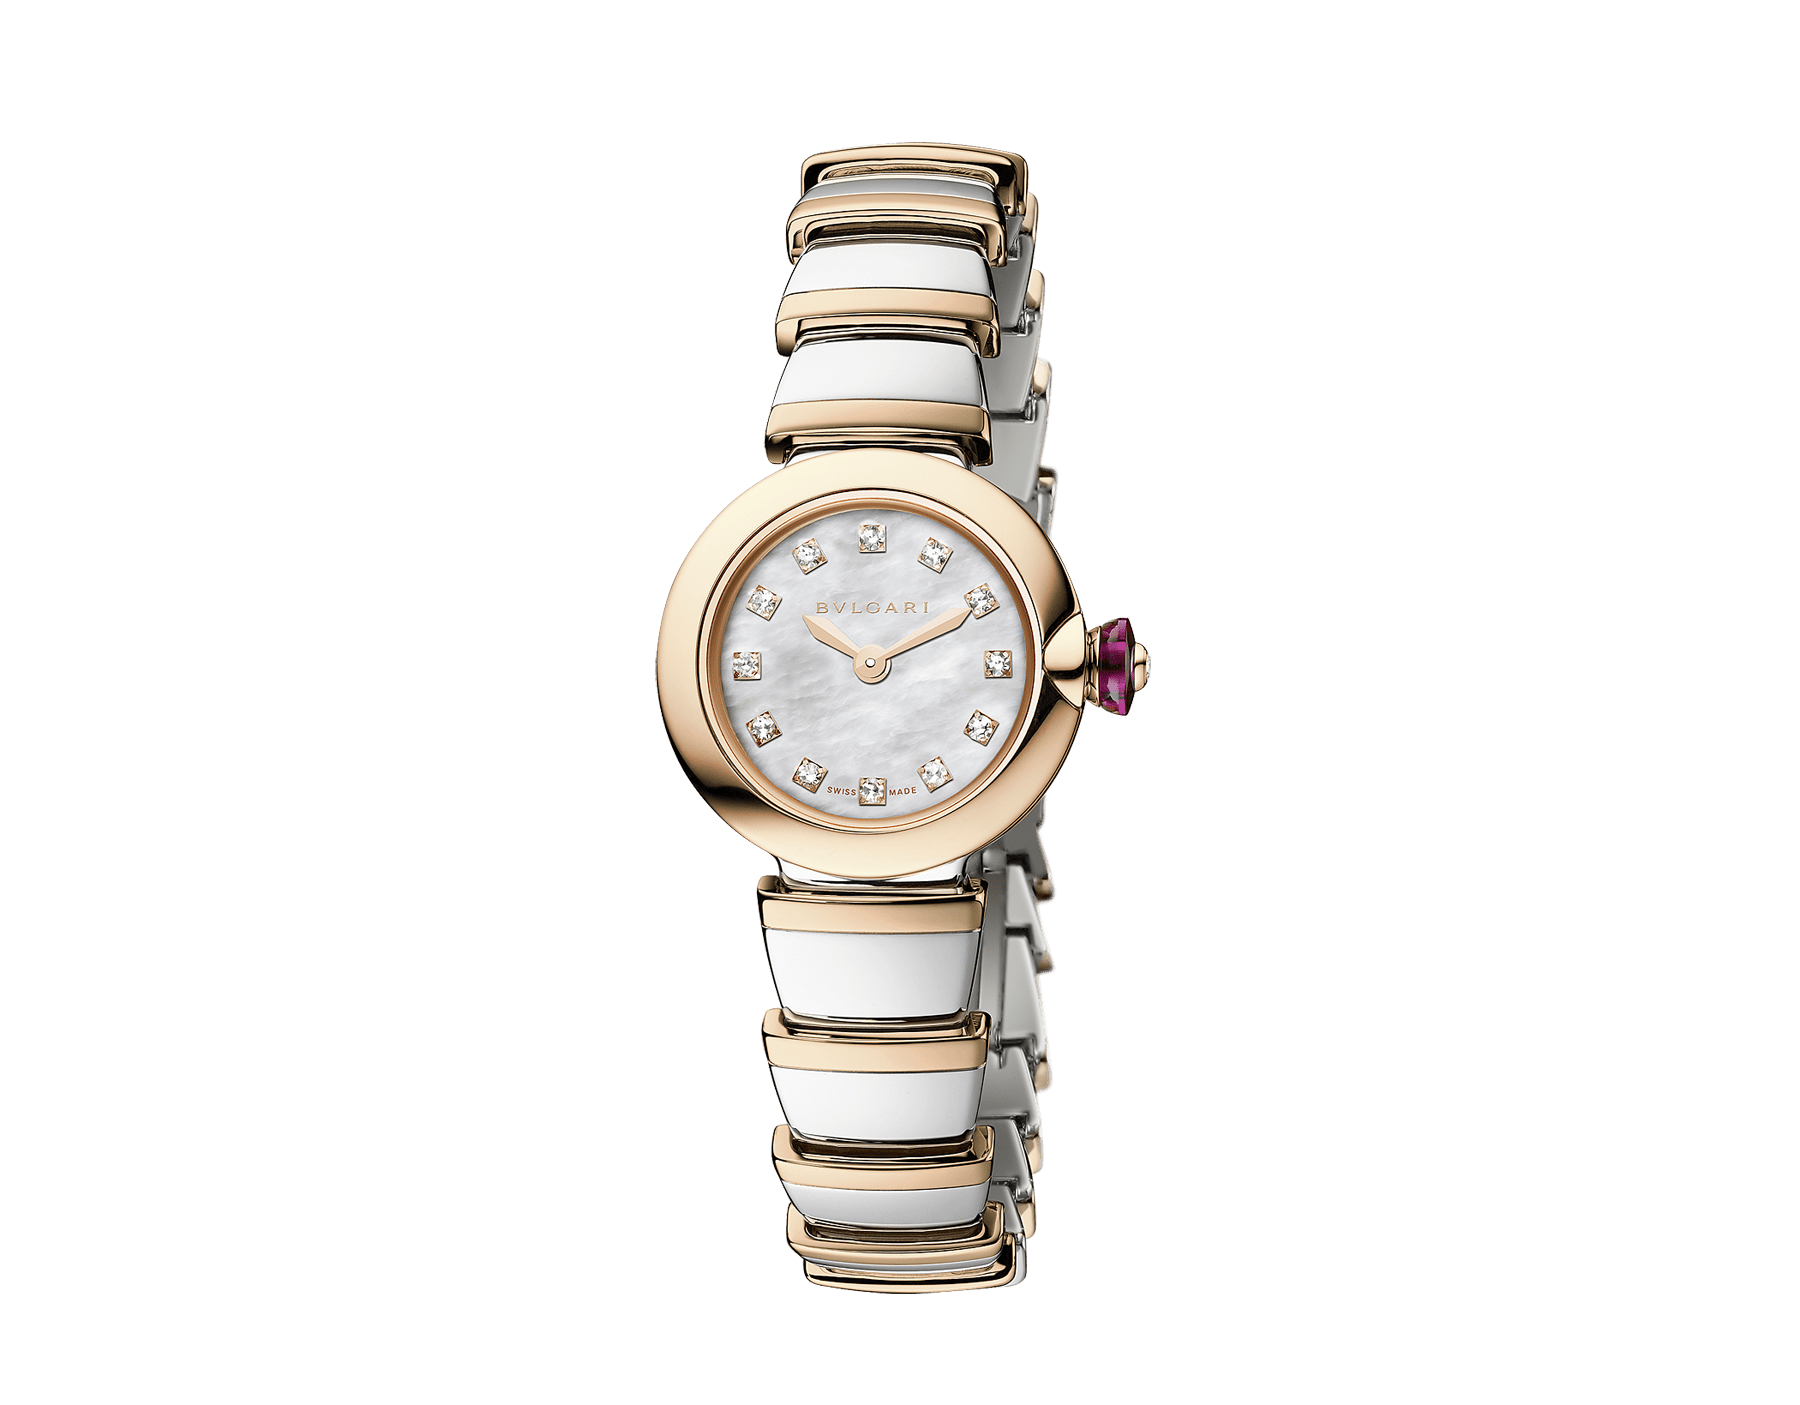 Montre Piccola Lvcea avec boîtier en acier inoxydable, lunette en or rose 18 K, cadran en nacre blanche, index sertis de diamants, bracelet en or rose 18 K et acier inoxydable. 103048 image 1